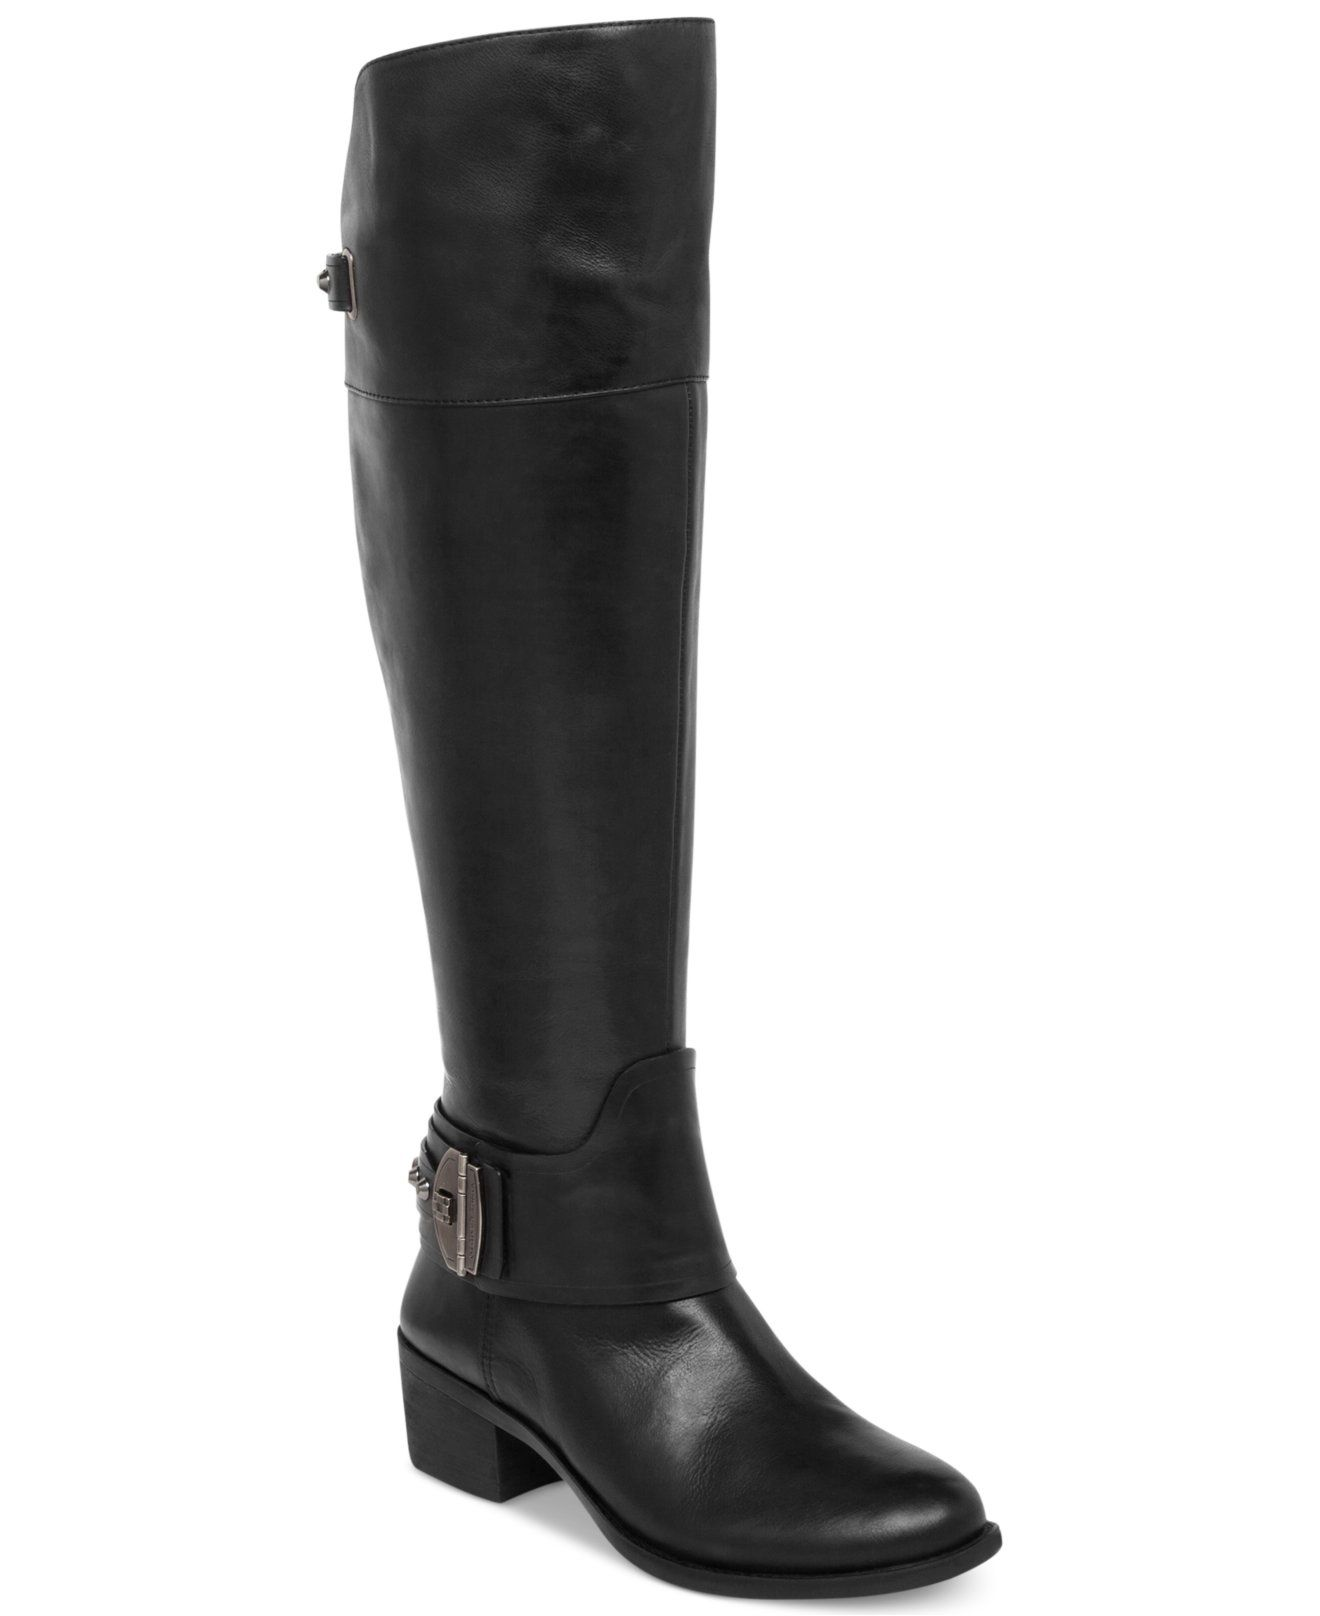 Vince Camuto Beatrix Over The Knee Wide Calf Riding Boots Shoes